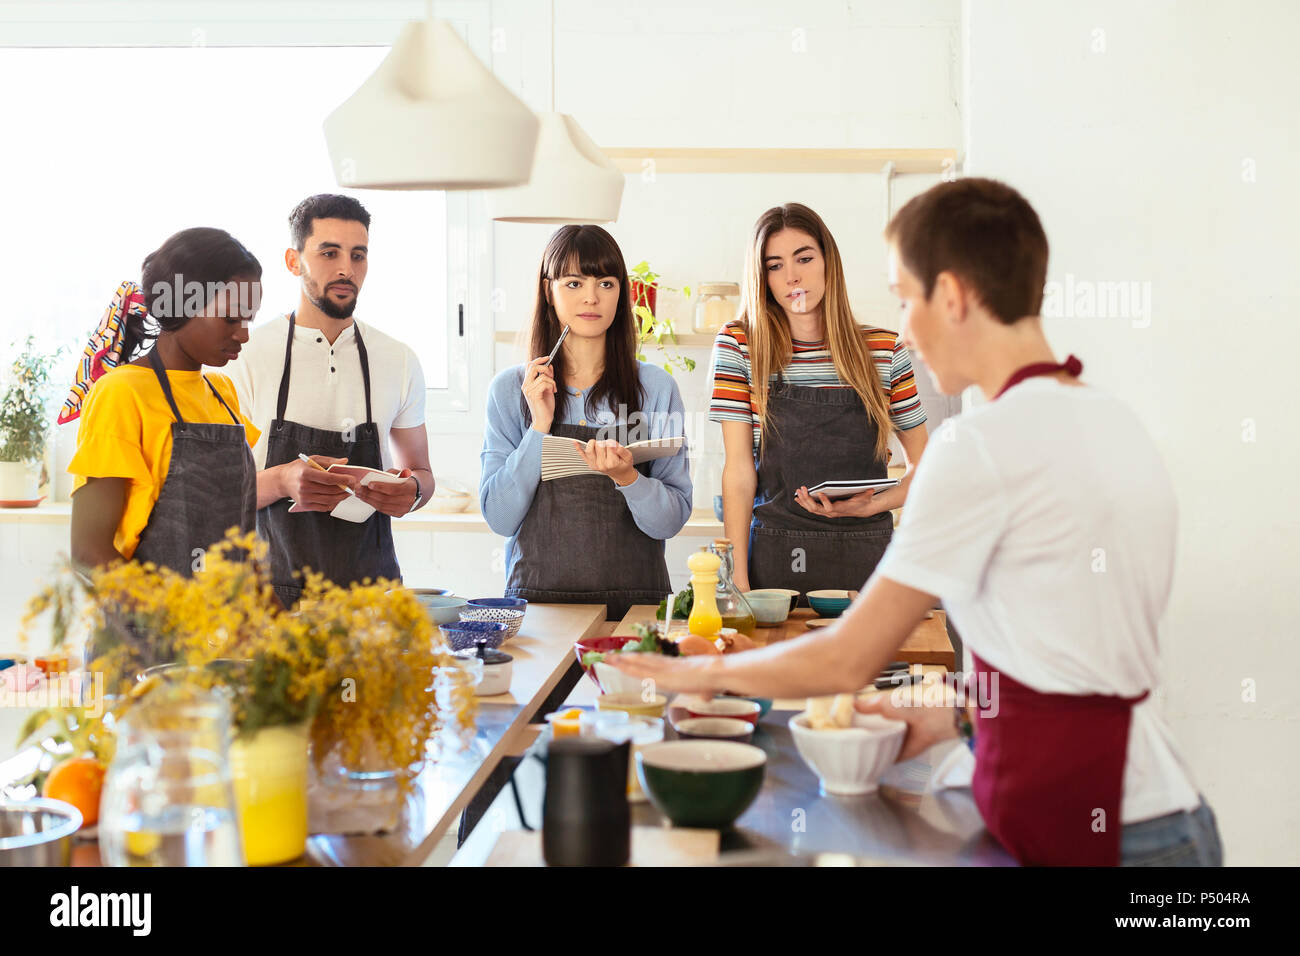 Friends in a cooking workshop listening to instructor - Stock Image